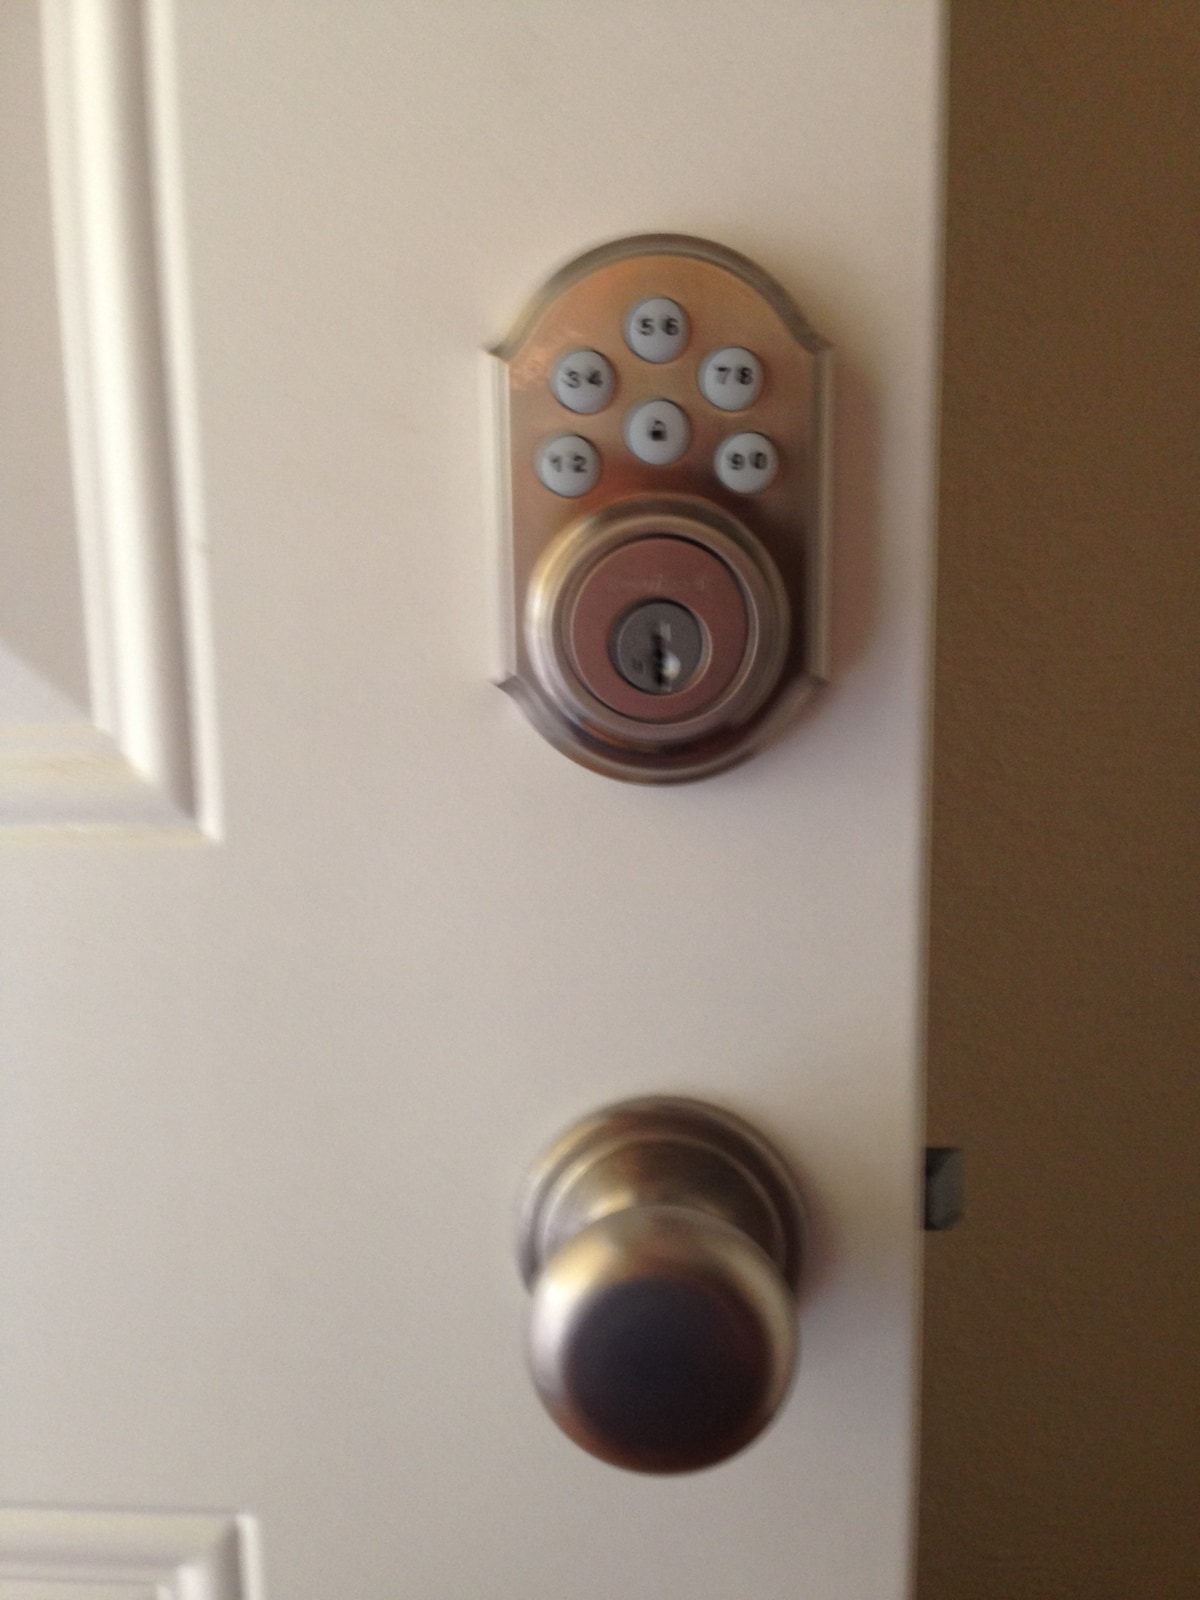 We have a keypad entry on the front door which makes everything really easy.